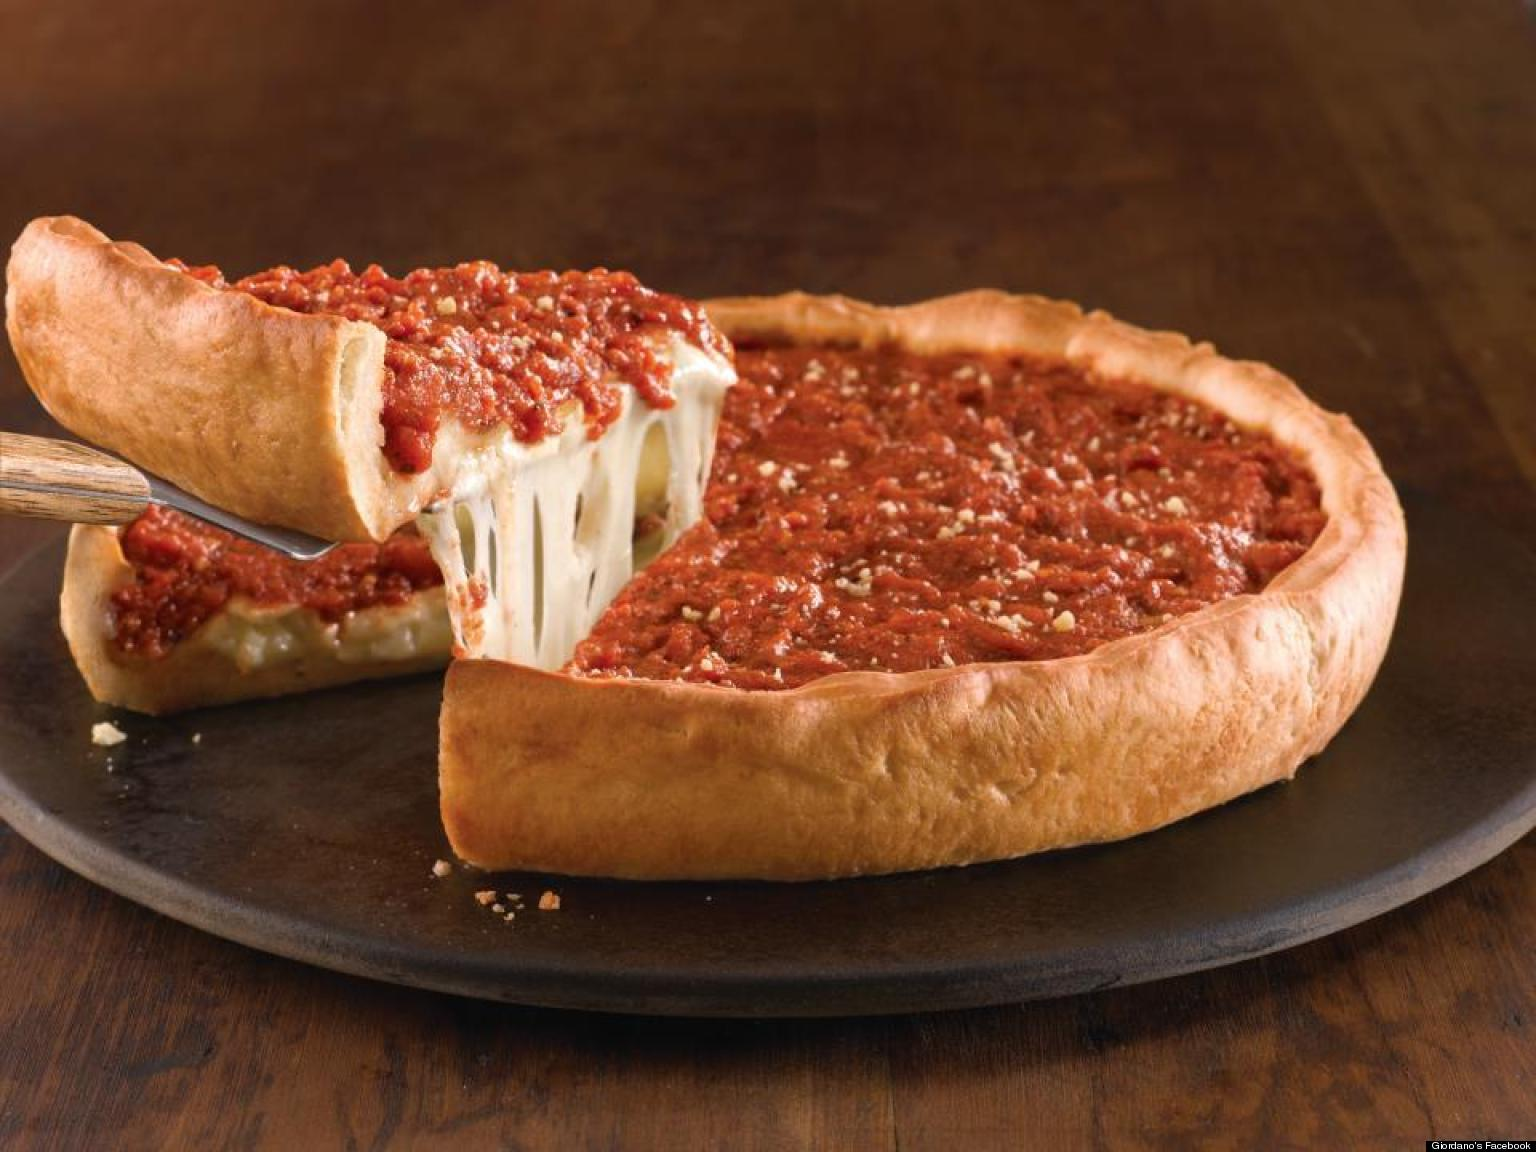 Best chicago pizza recipe a diy method to help crack the code of best chicago pizza recipe a diy method to help crack the code of chicago style deep dish huffpost forumfinder Gallery